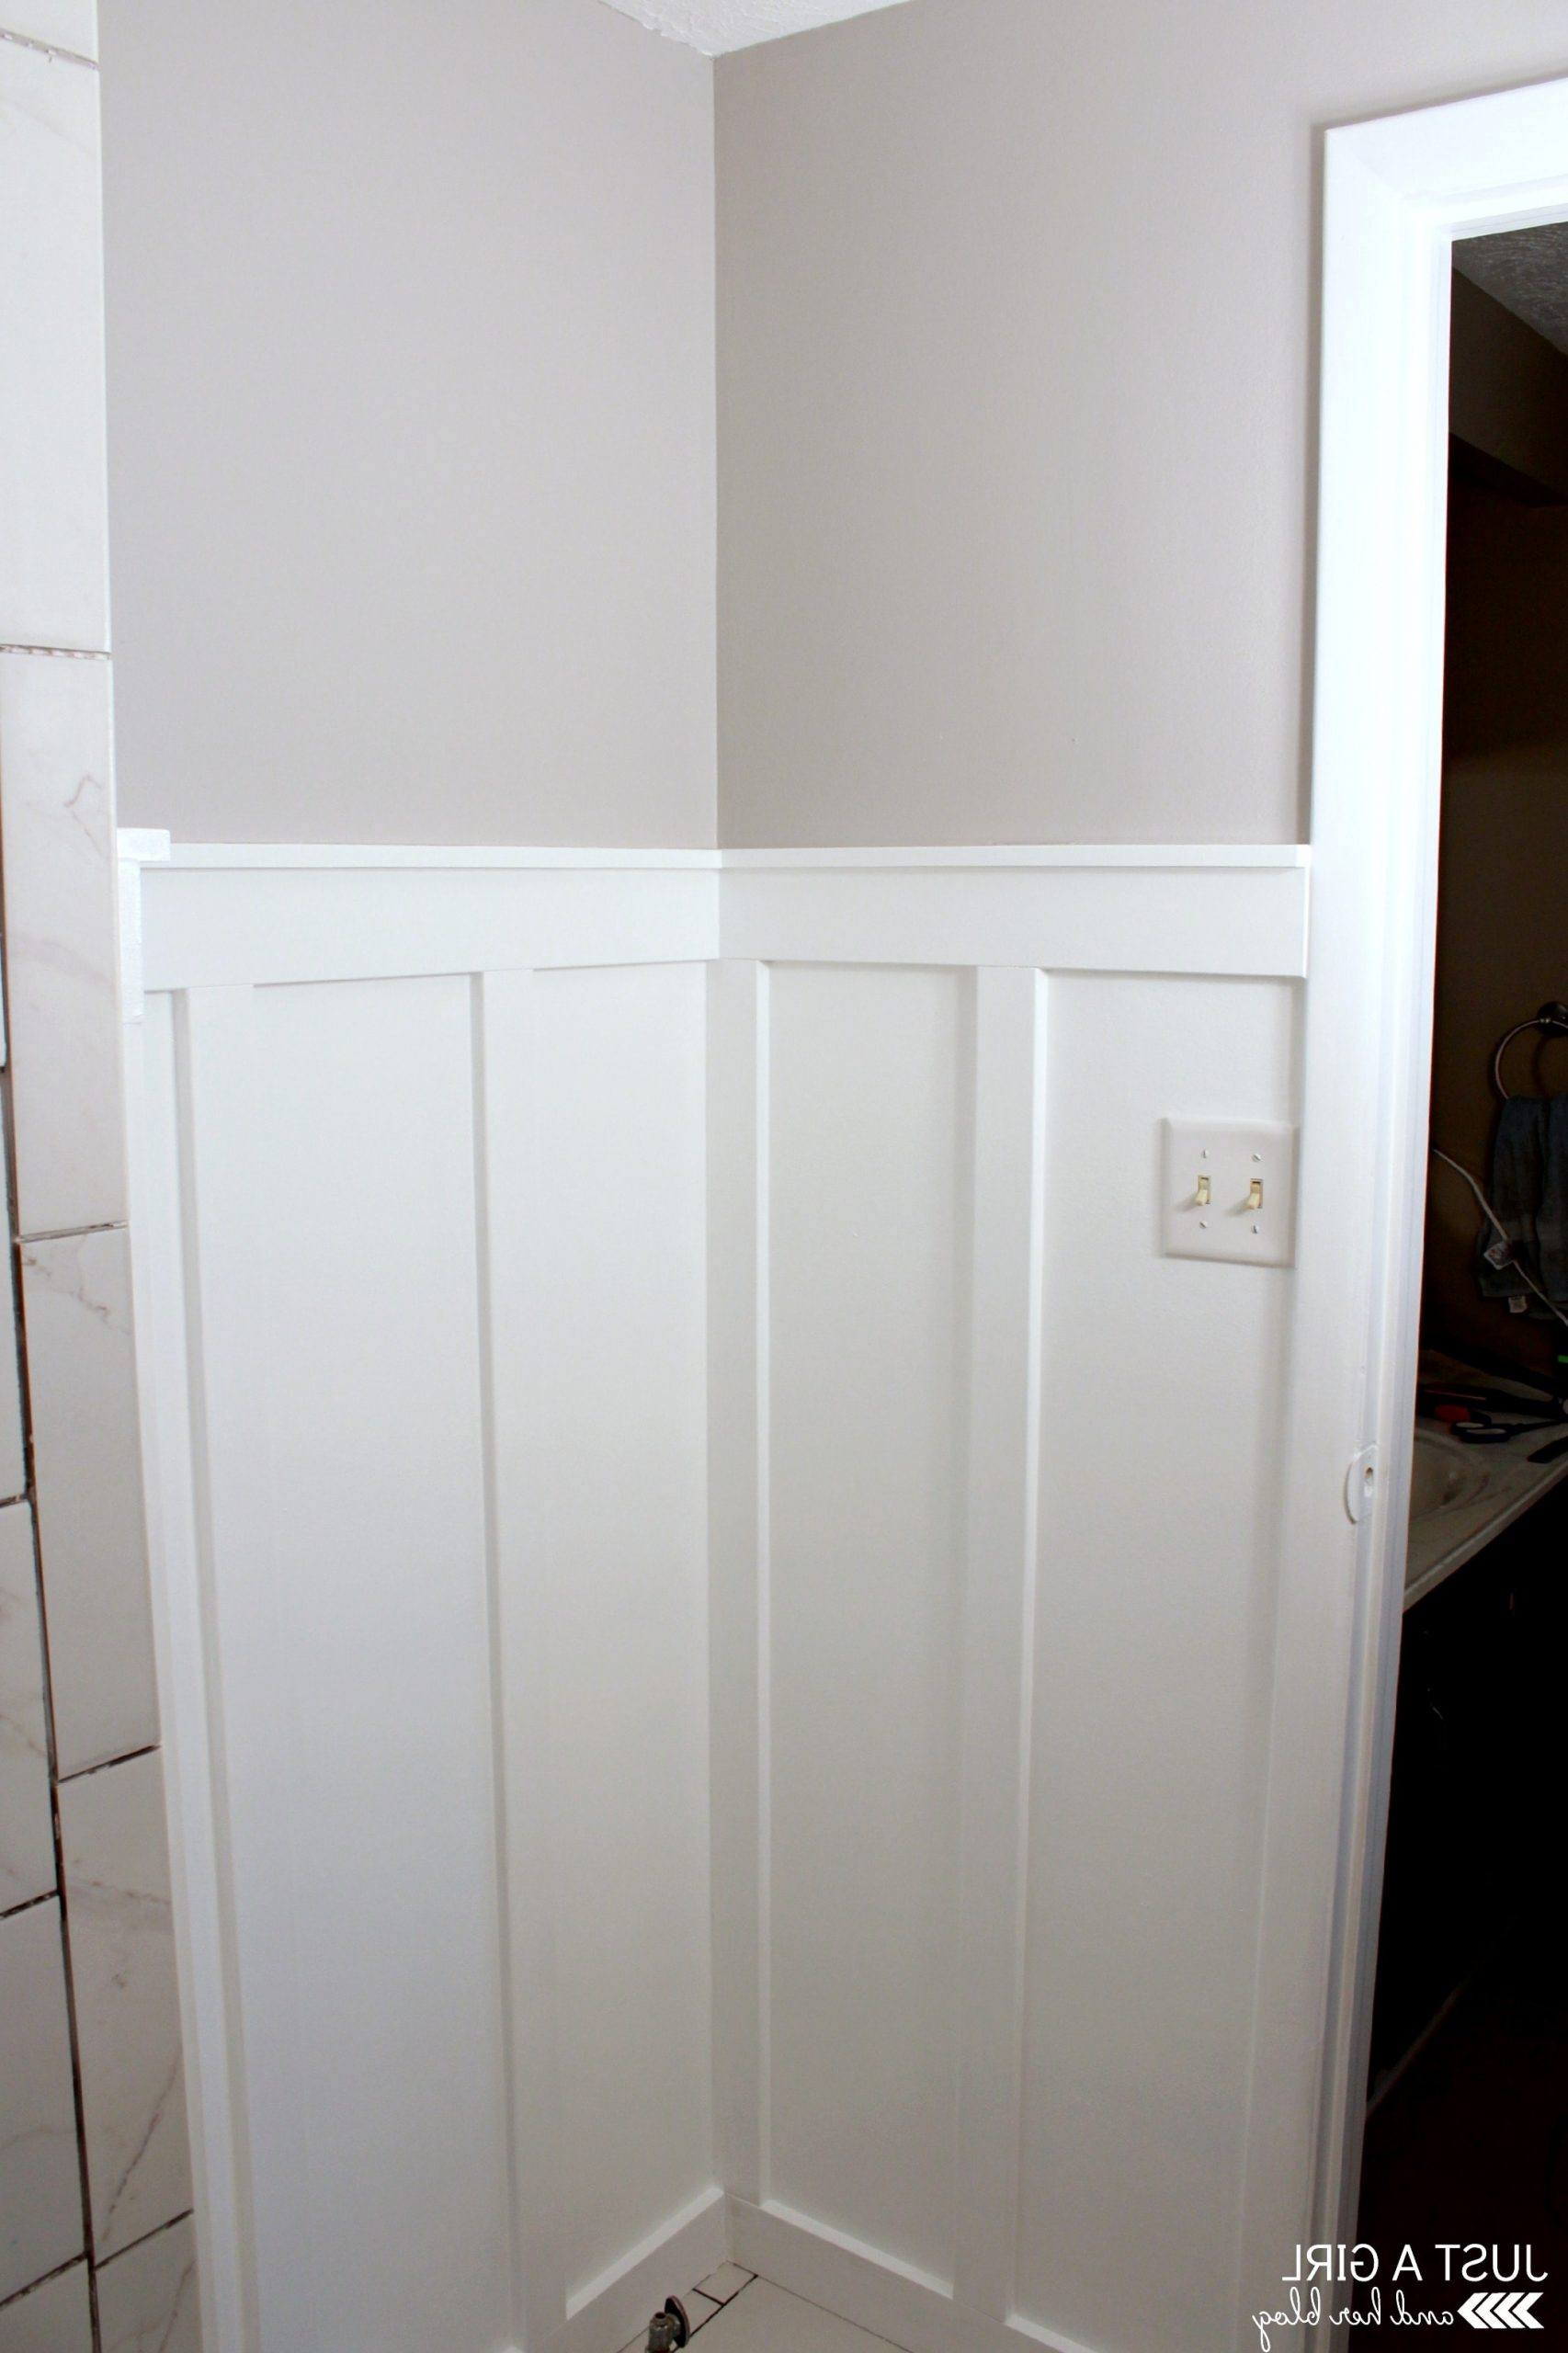 How To Install Board And Batten In A Small Space {Master Board And Batten Small Bathroom